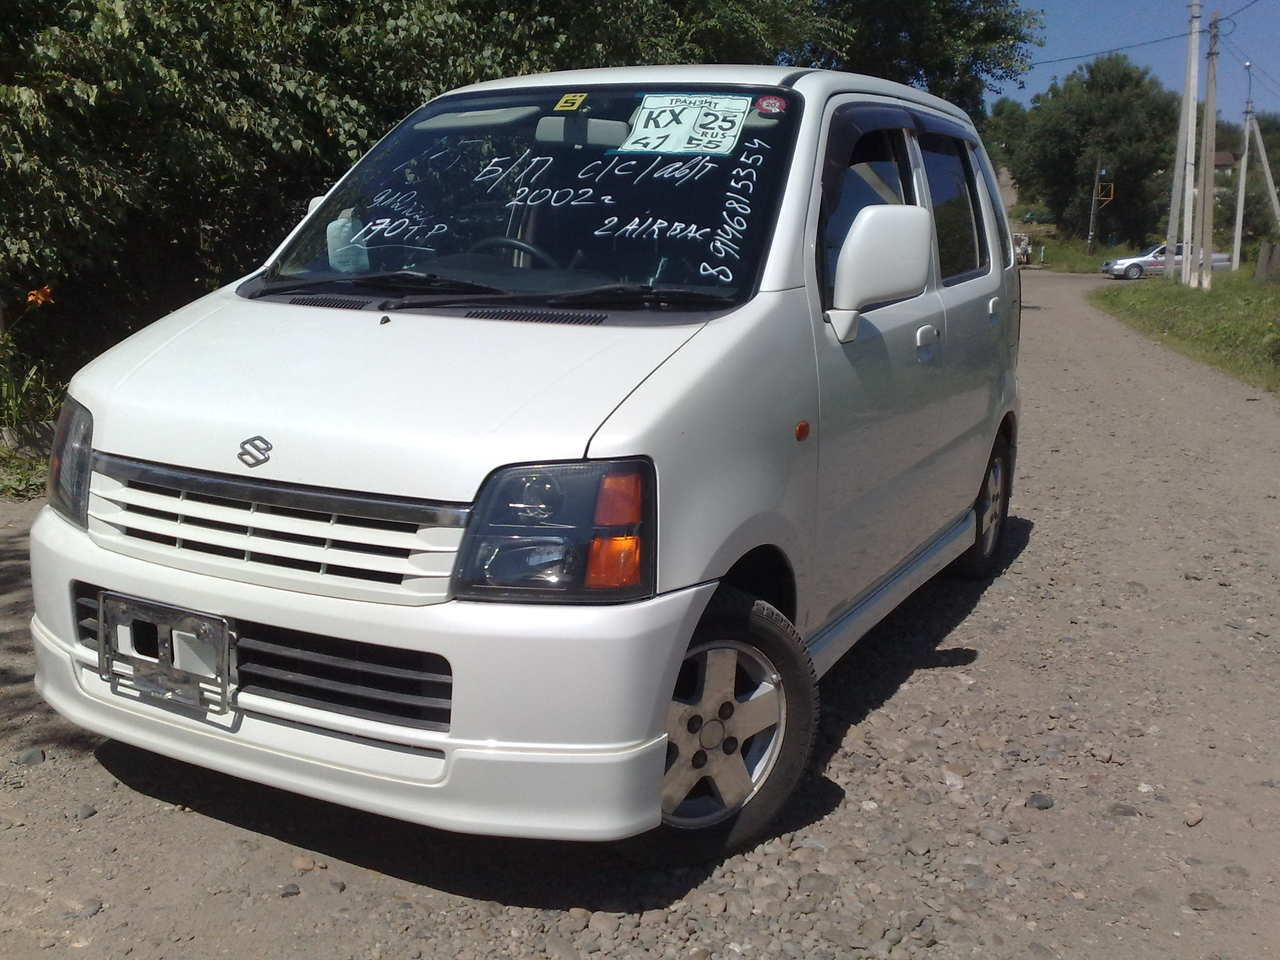 used 2002 suzuki wagon r photos 660cc gasoline ff automatic for sale. Black Bedroom Furniture Sets. Home Design Ideas